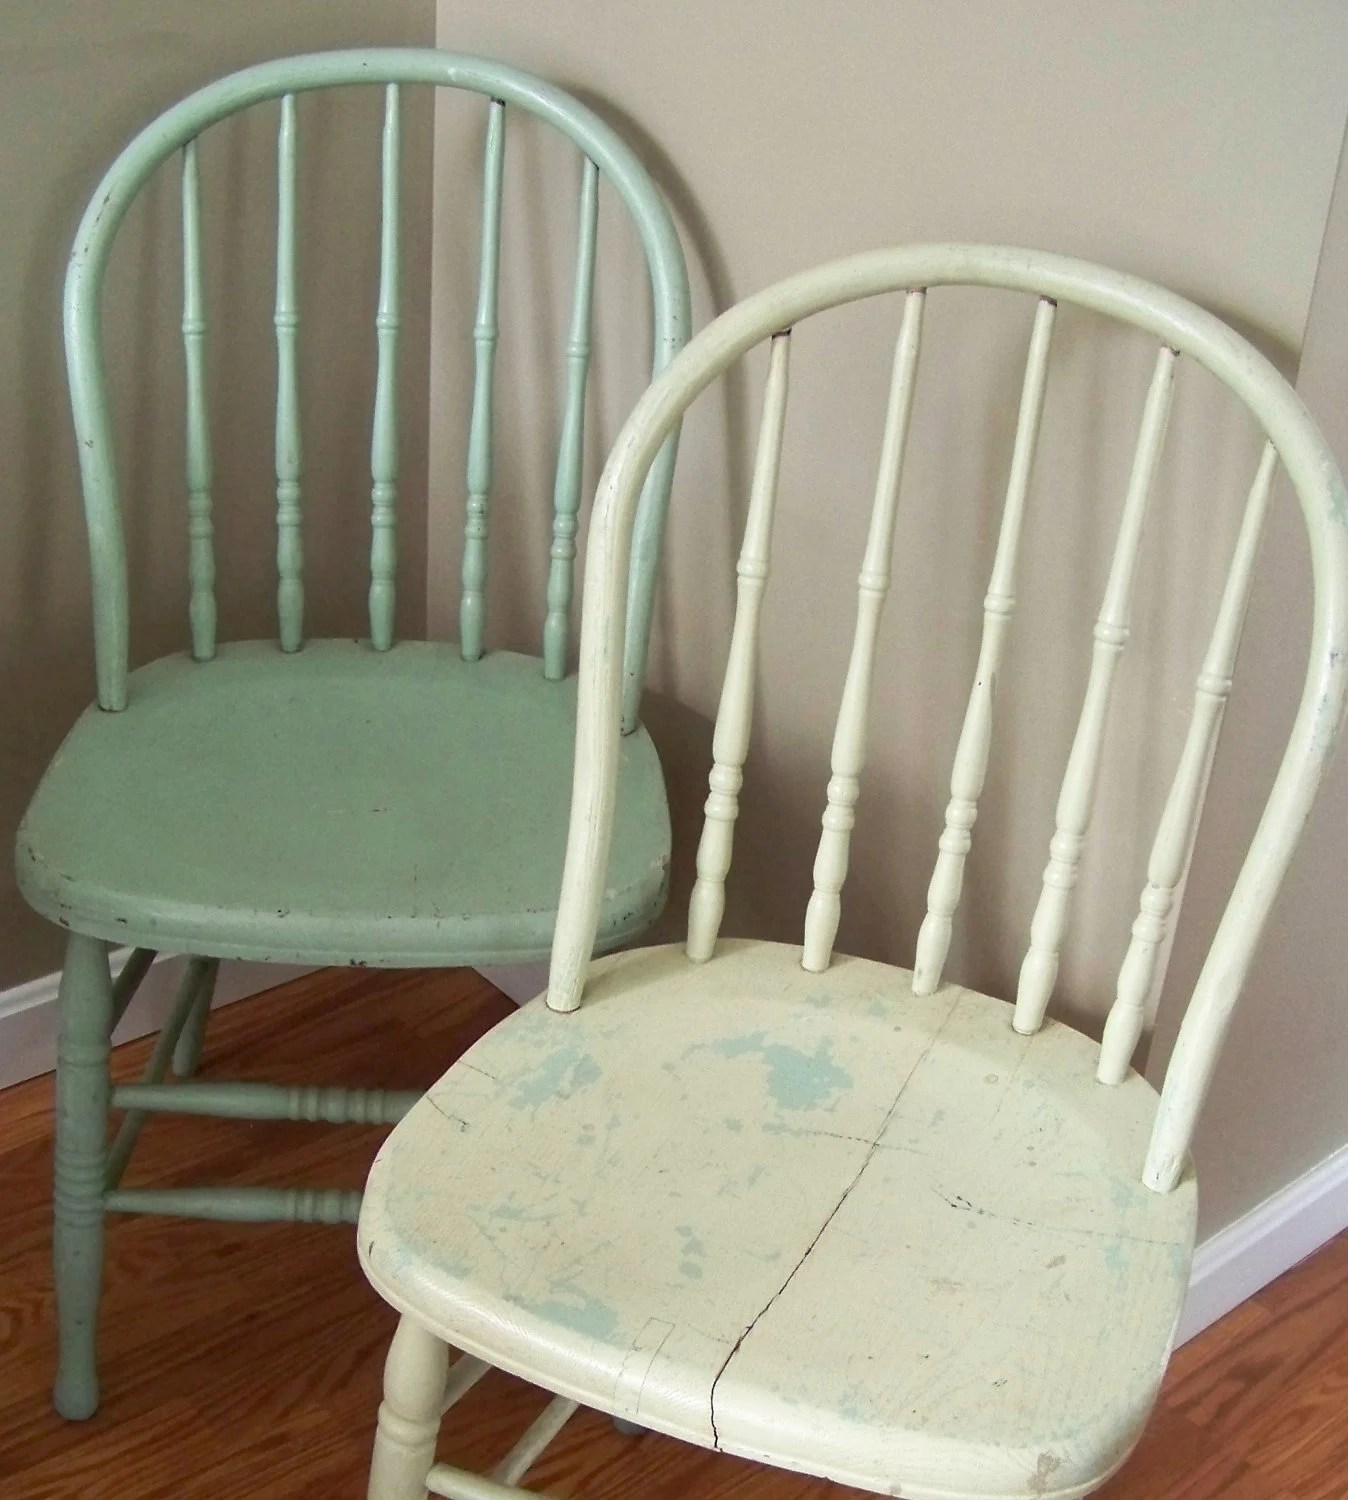 vintage bentwood chairs chair design description reserved wooden in shabby chic aqua